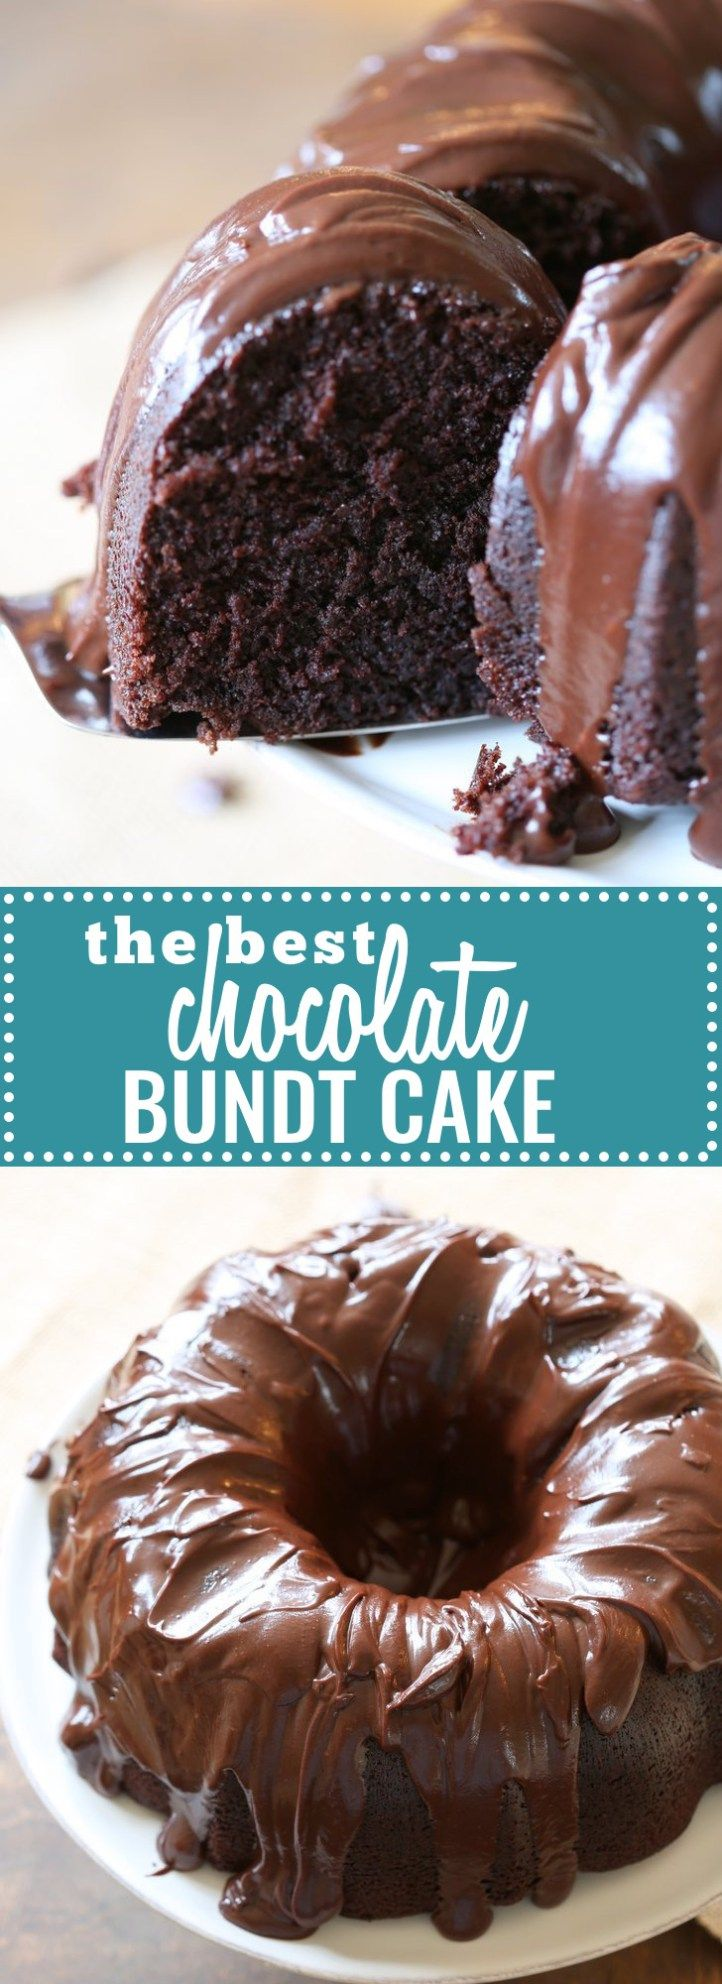 The Best Chocolate Bundt Cake: This really is the best (and thankfully most foolproof) chocolate cake around. With a rich, thick glaze, this little beauty is great the day you make it, but even better after a day or two in the fridge.